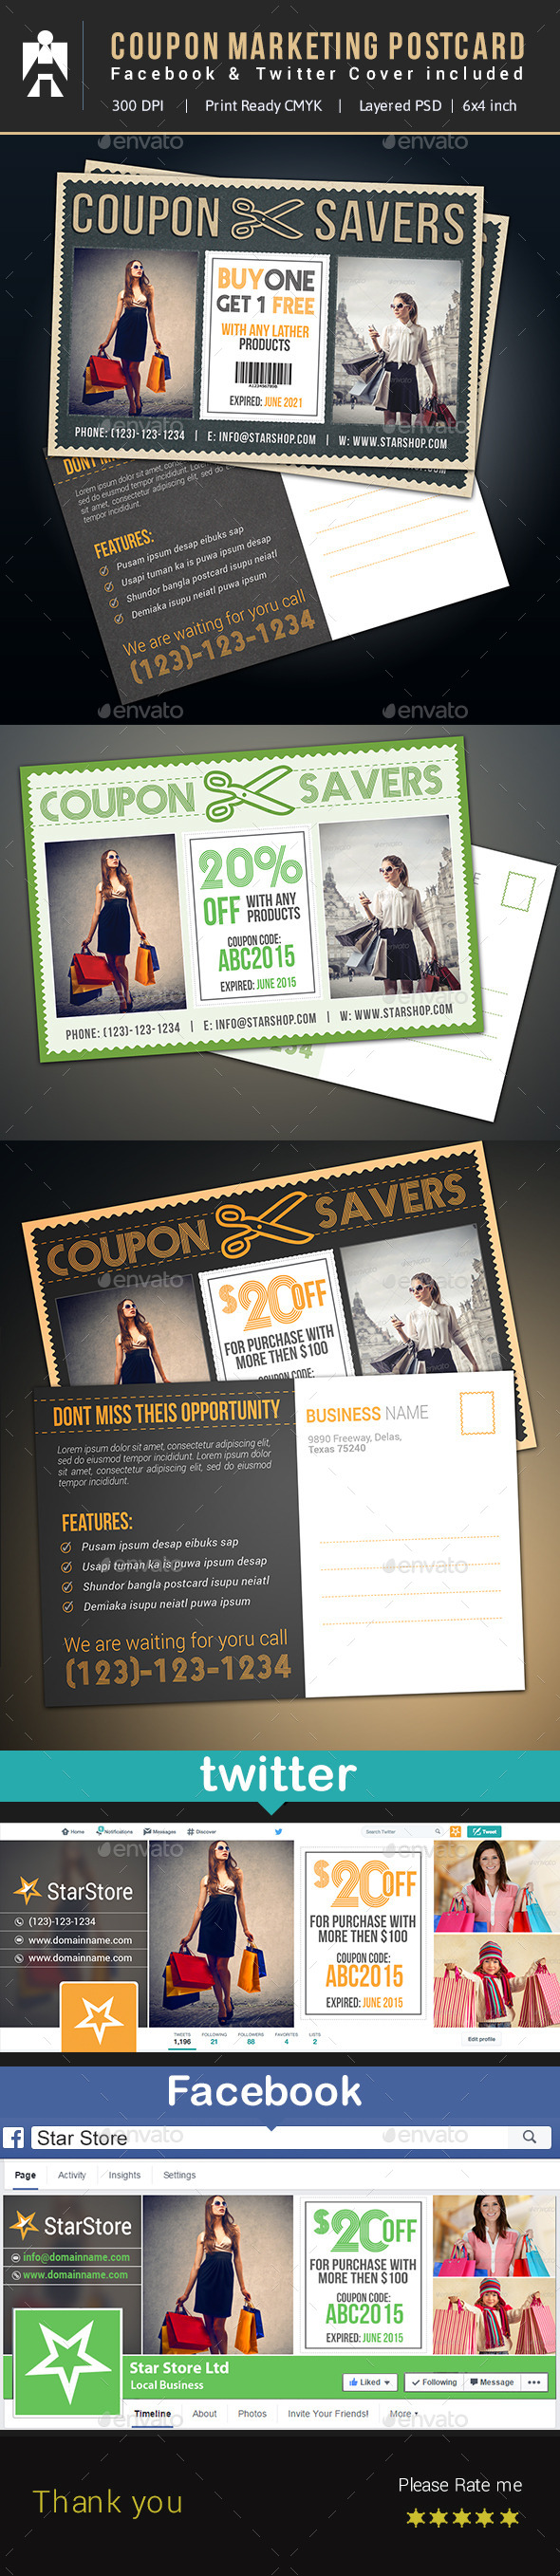 GraphicRiver Coupon Postcard Facebook & Twitter 10598599